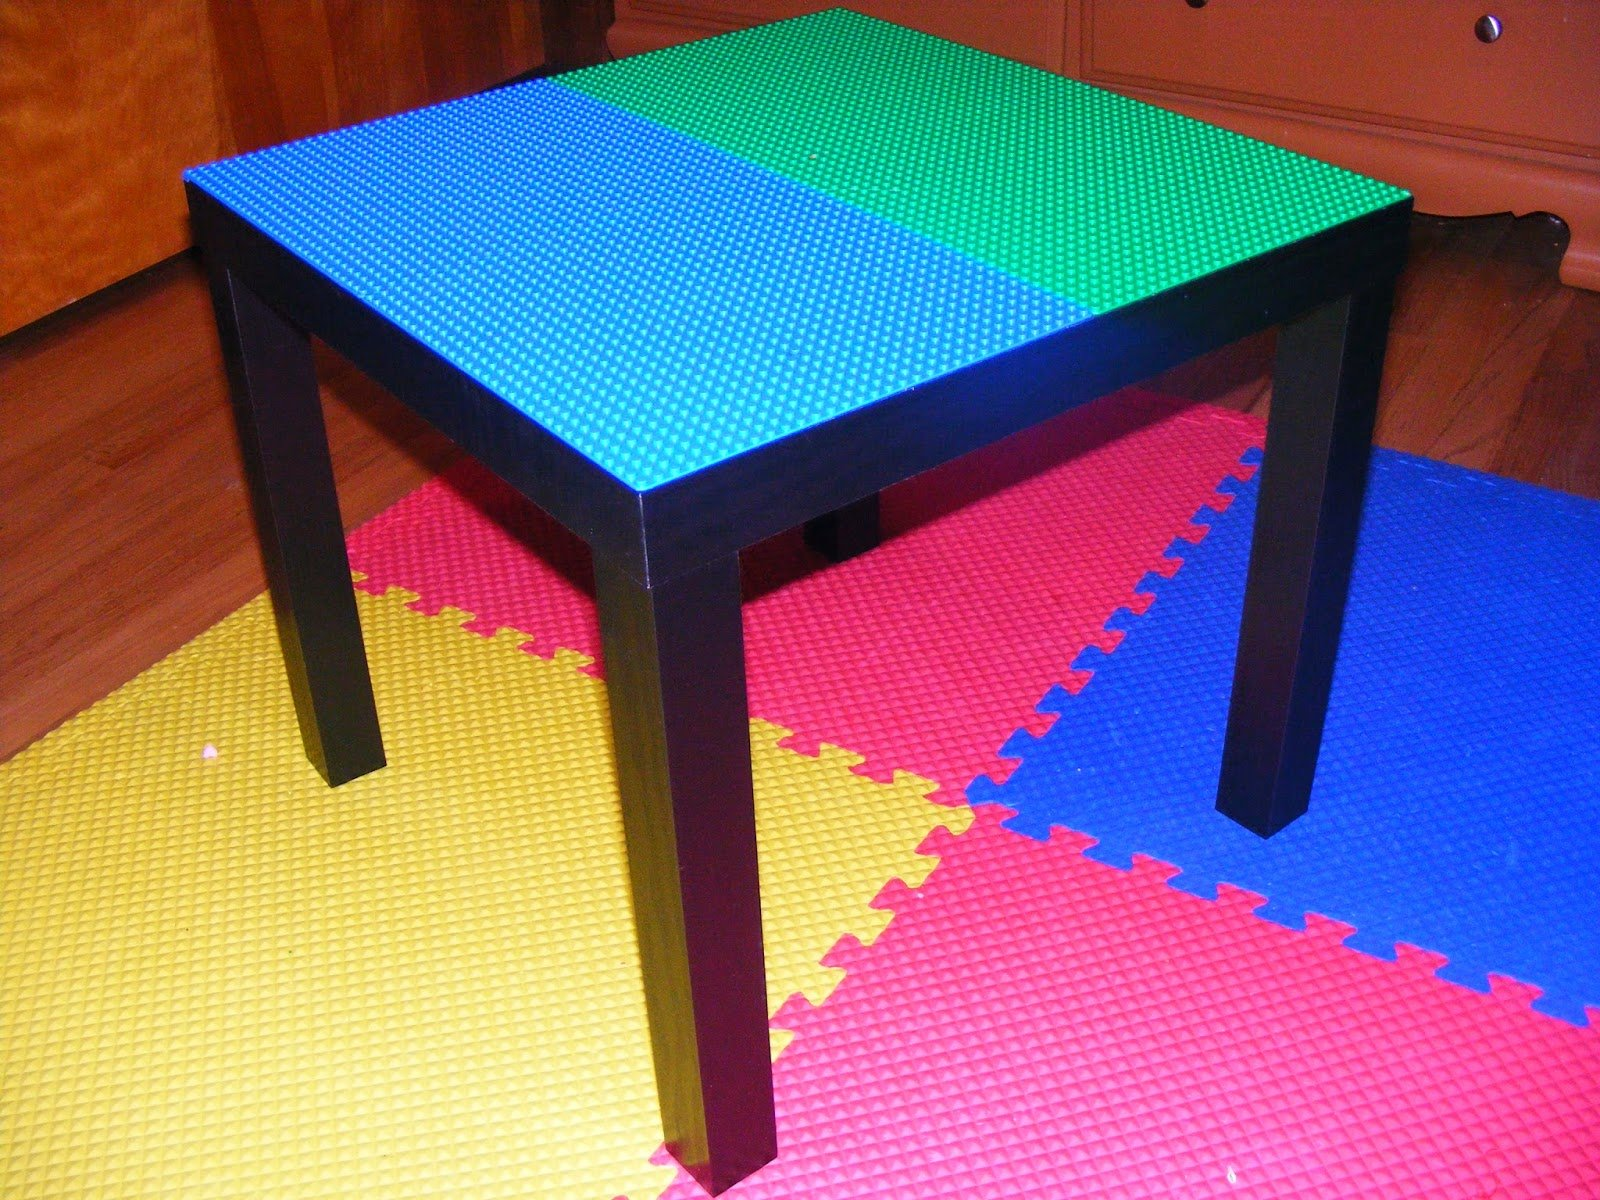 50 diys to build a lego table guide patterns. Black Bedroom Furniture Sets. Home Design Ideas